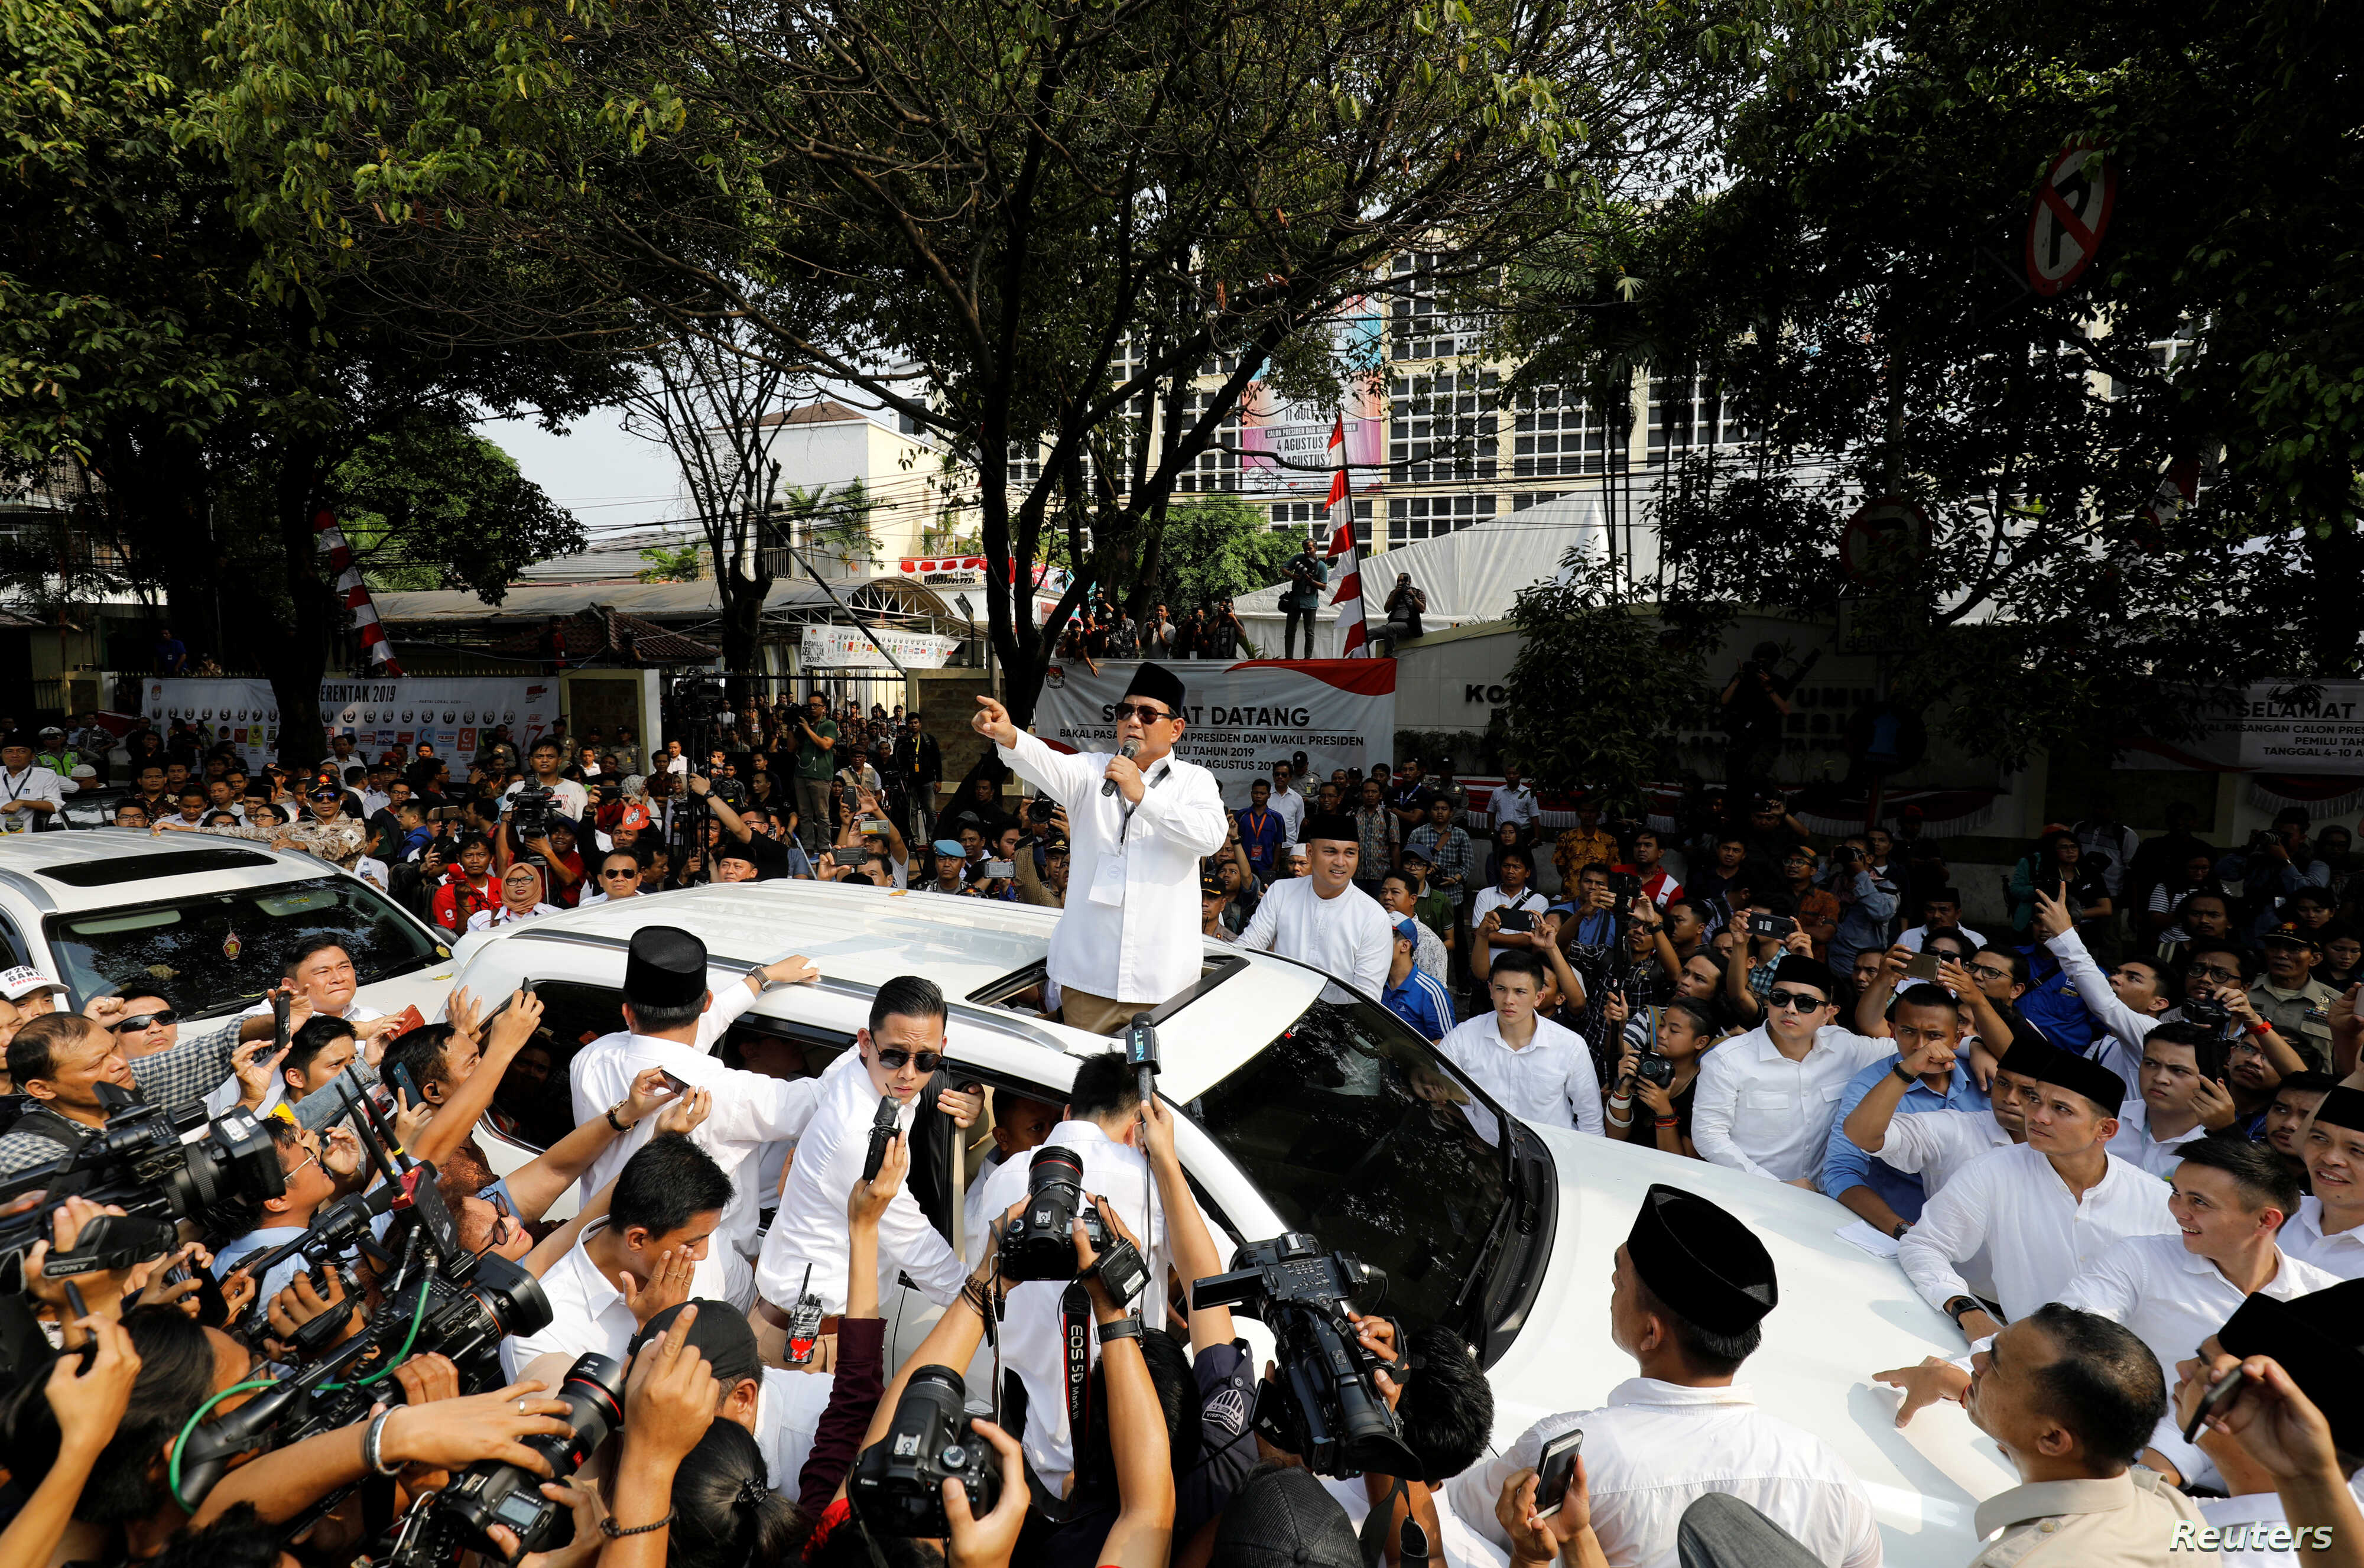 FILE - Former general and head of the Gerinrda Party Prabowo Subianto speaks to supporters after registering himself and his running mate, former Jakarta Deputy Governor Sandiaga Uno, as candidates for the 2019 presidential election outside the Gener...